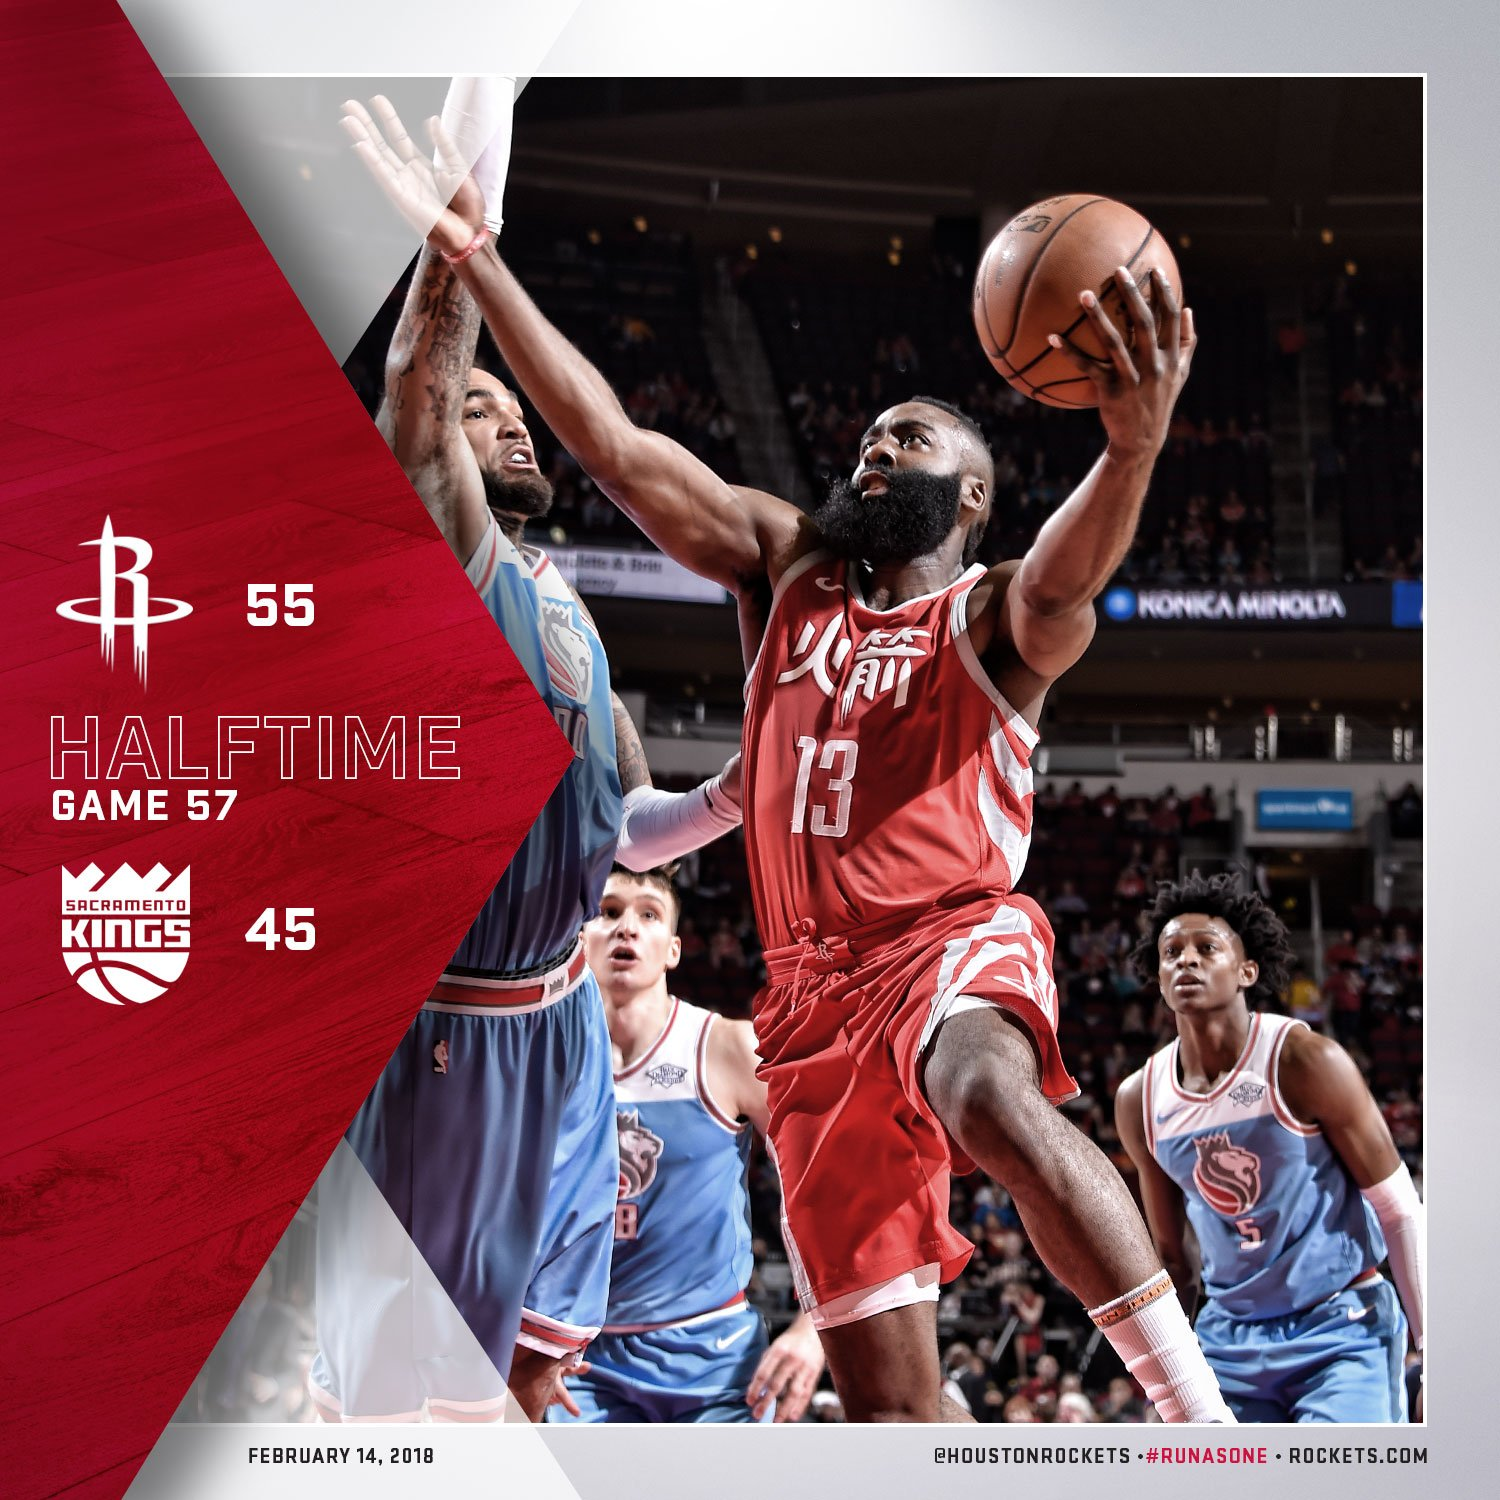 Halftime in Houston! #RunAsOne �� https://t.co/6nwmxs5fQu